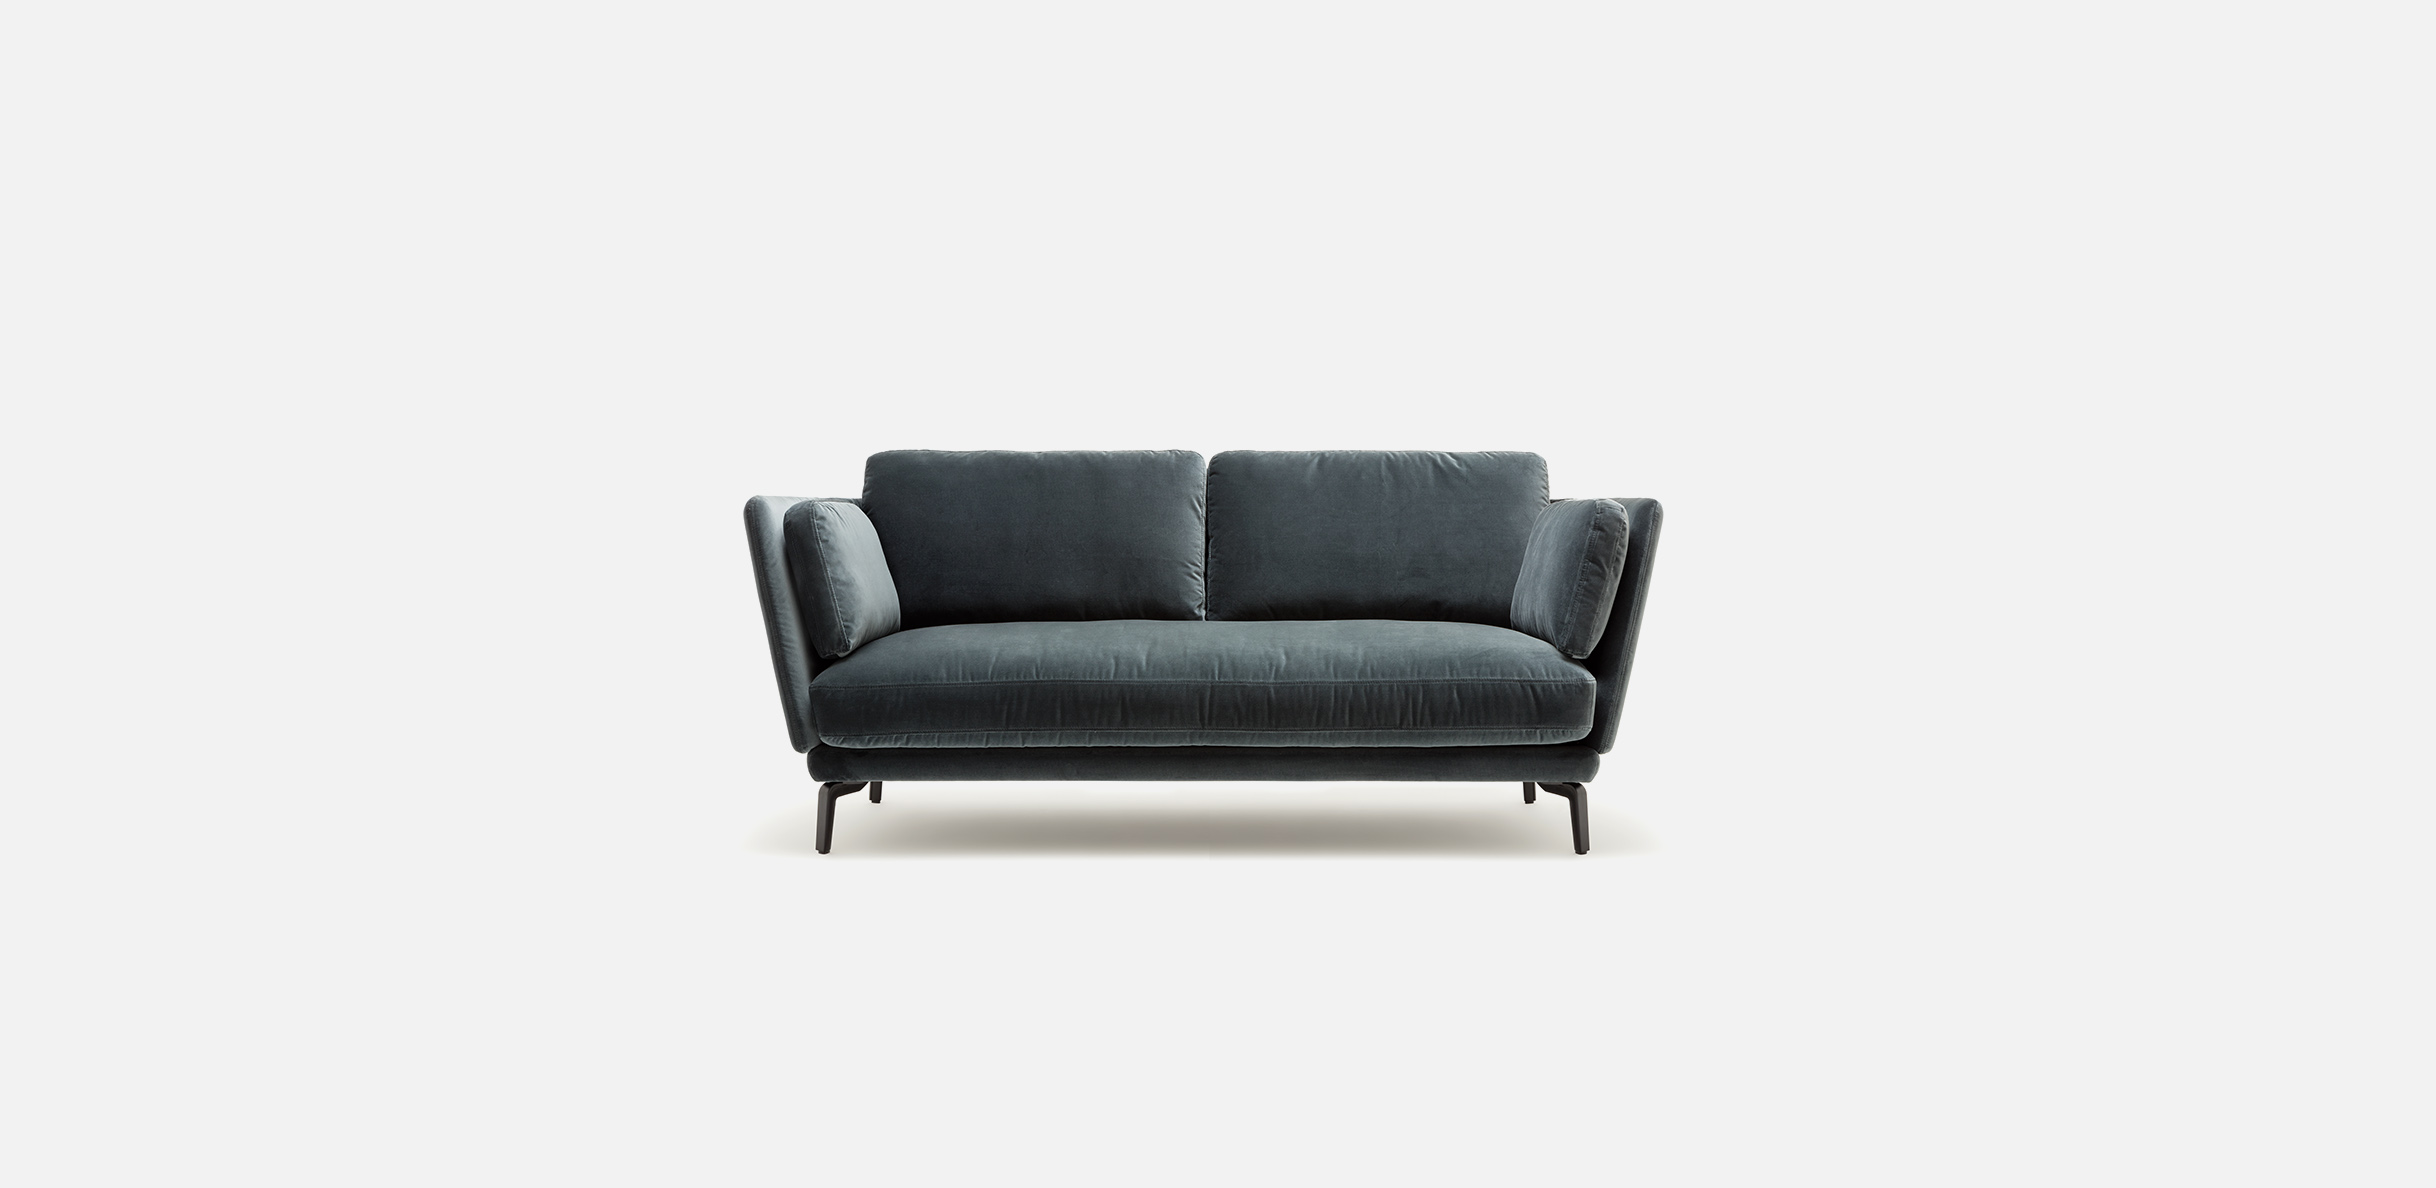 Rondo for Rolf benz schlafsofa